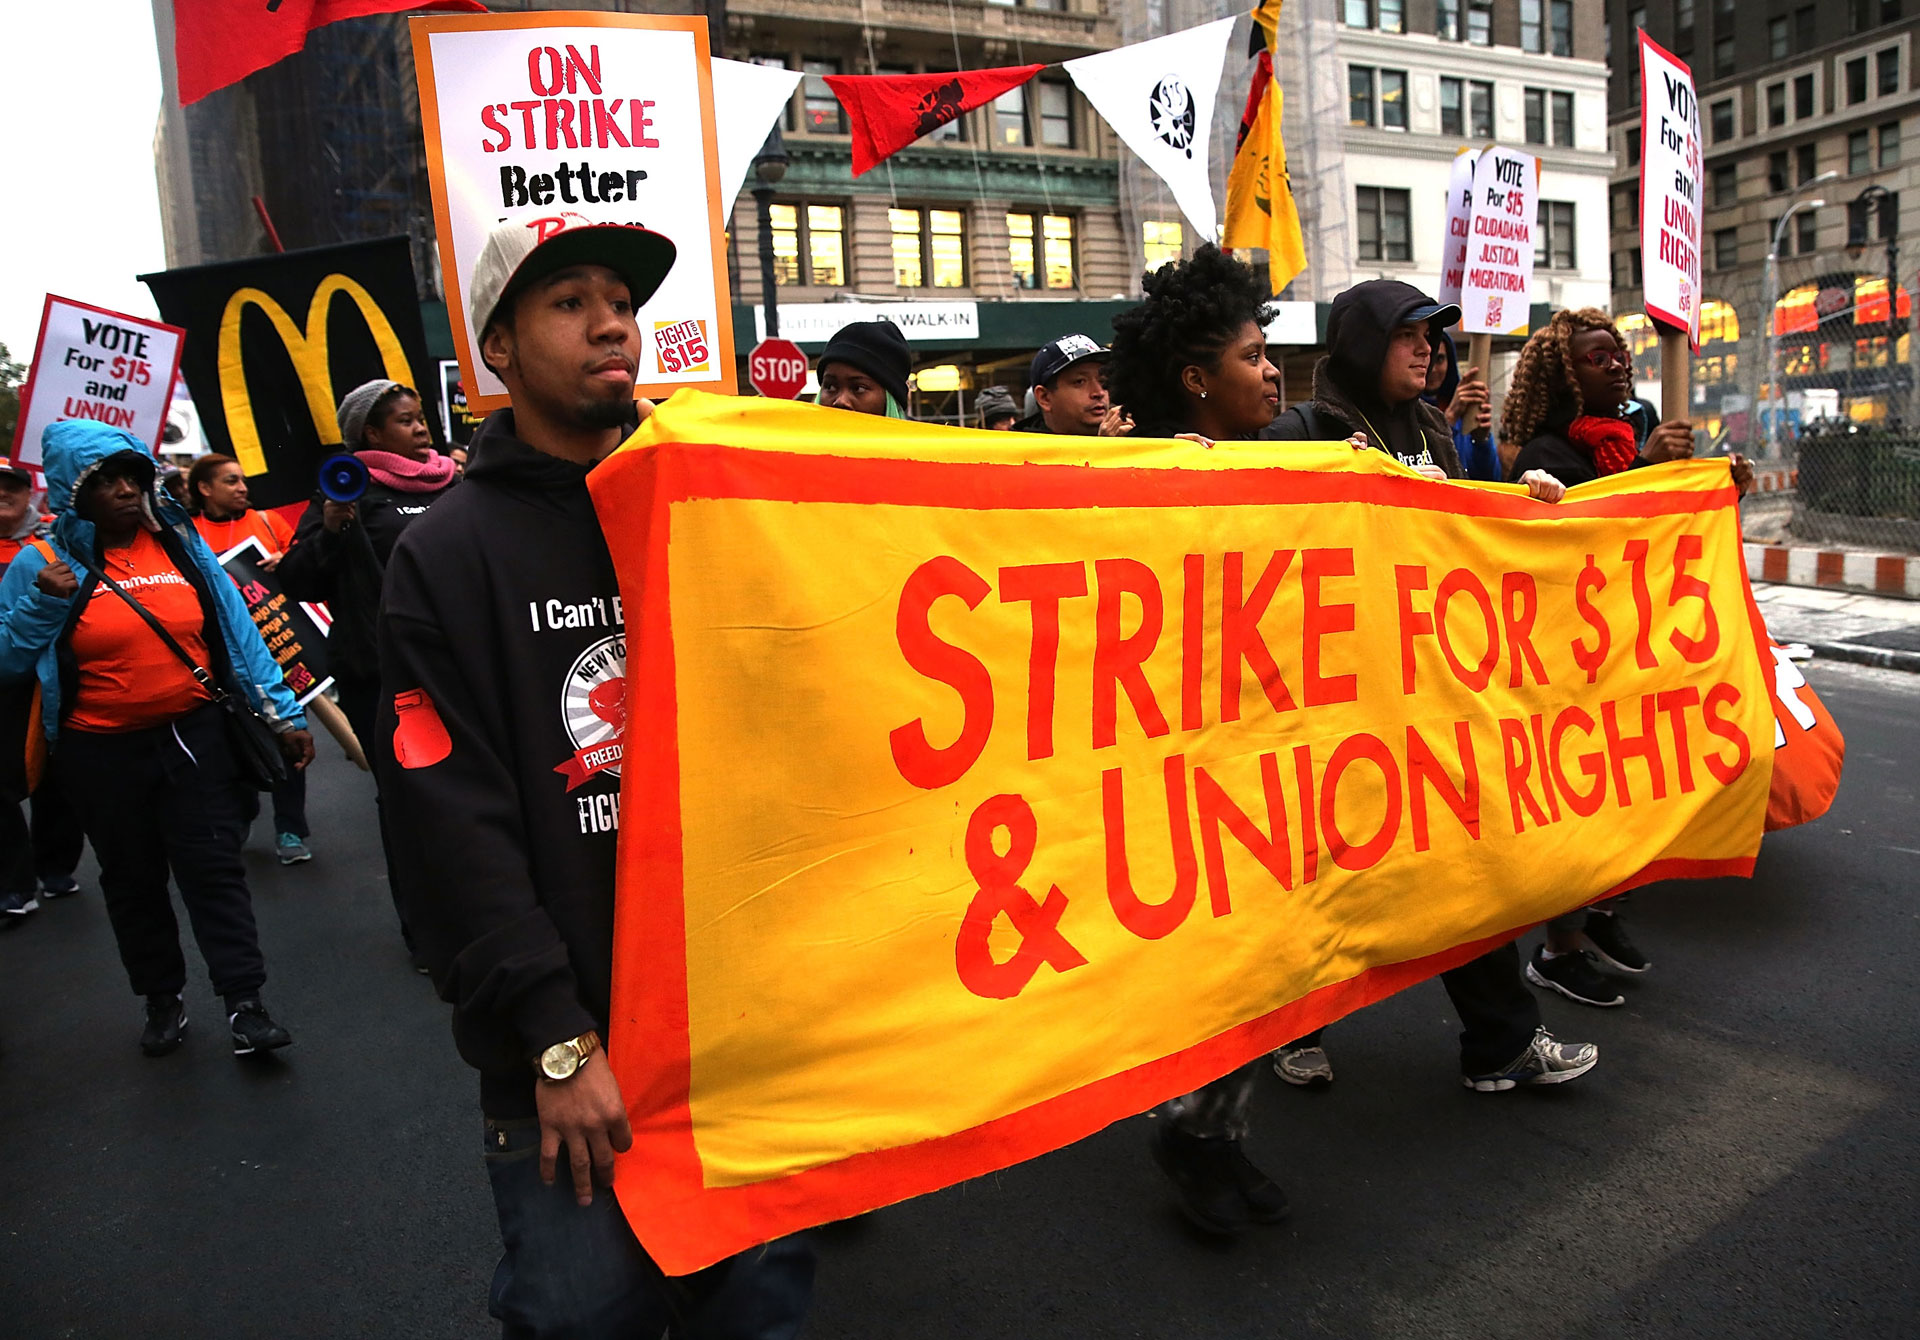 Low-wage workers and supporters protest for a $15 minimum wage last November in New York, as part of what organizers called a National Day of Action.